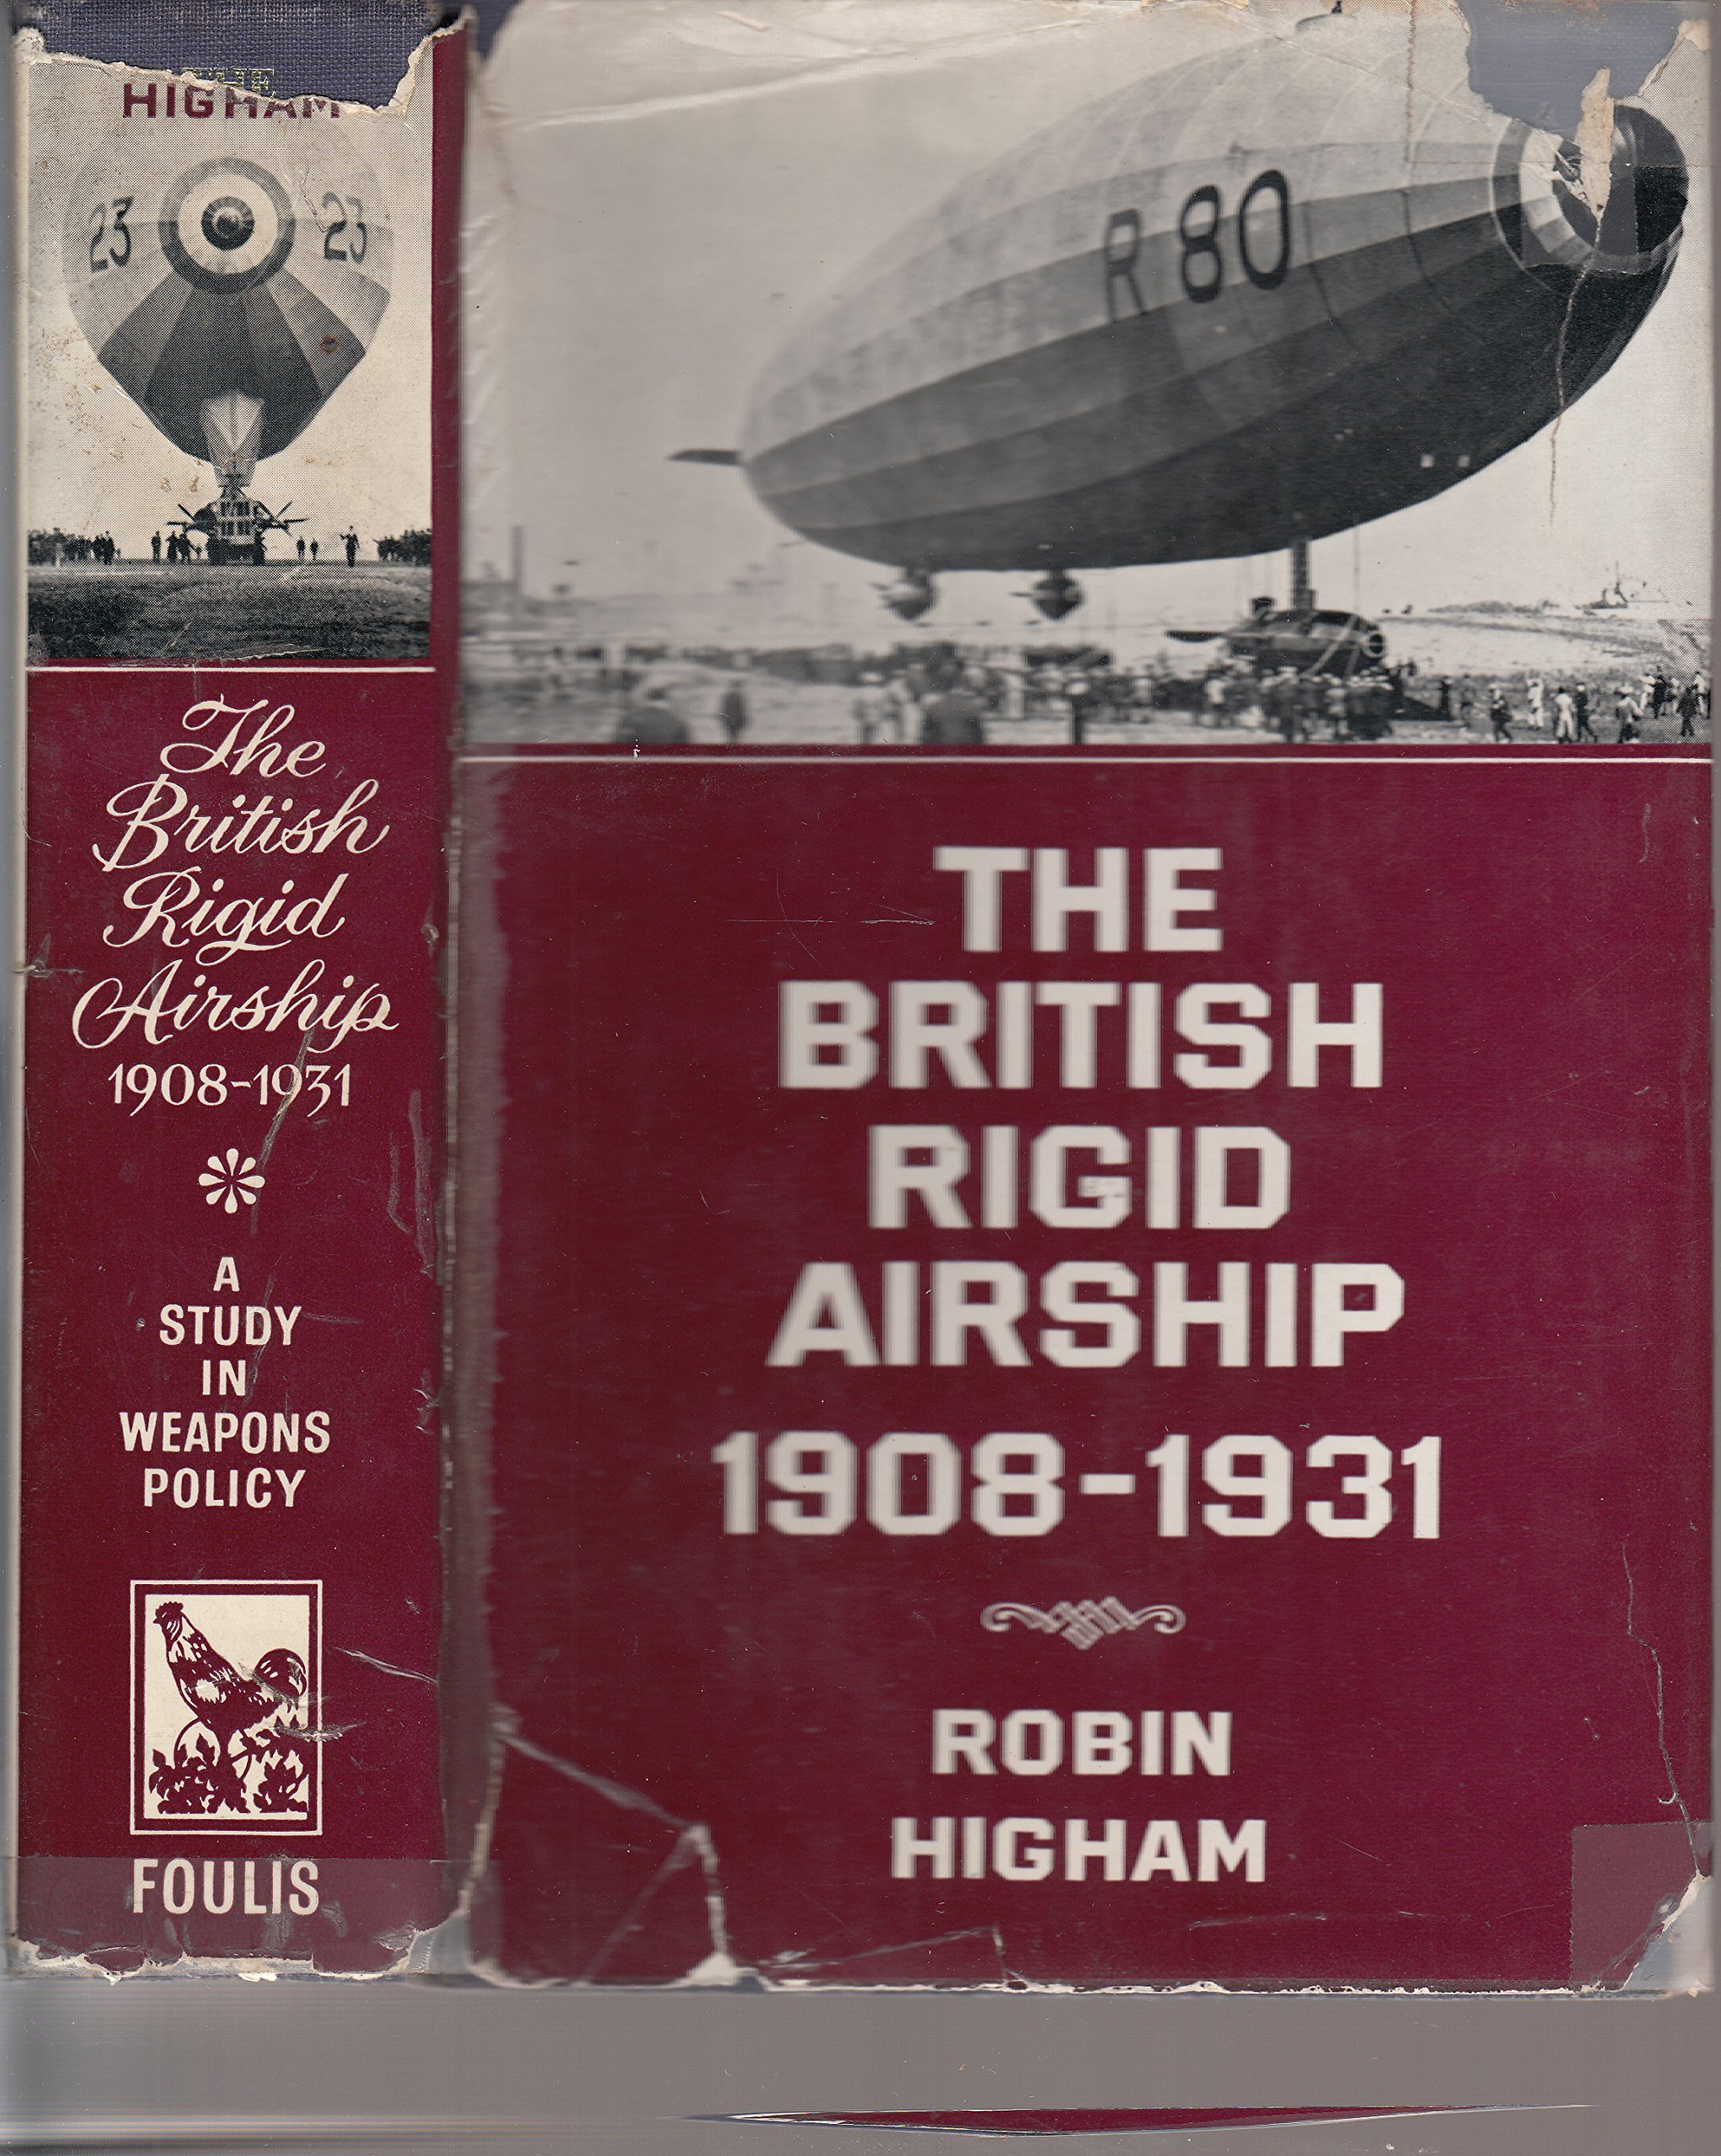 The British Rigid Airship 1908-1931: Robin Higham: Amazon com: Books